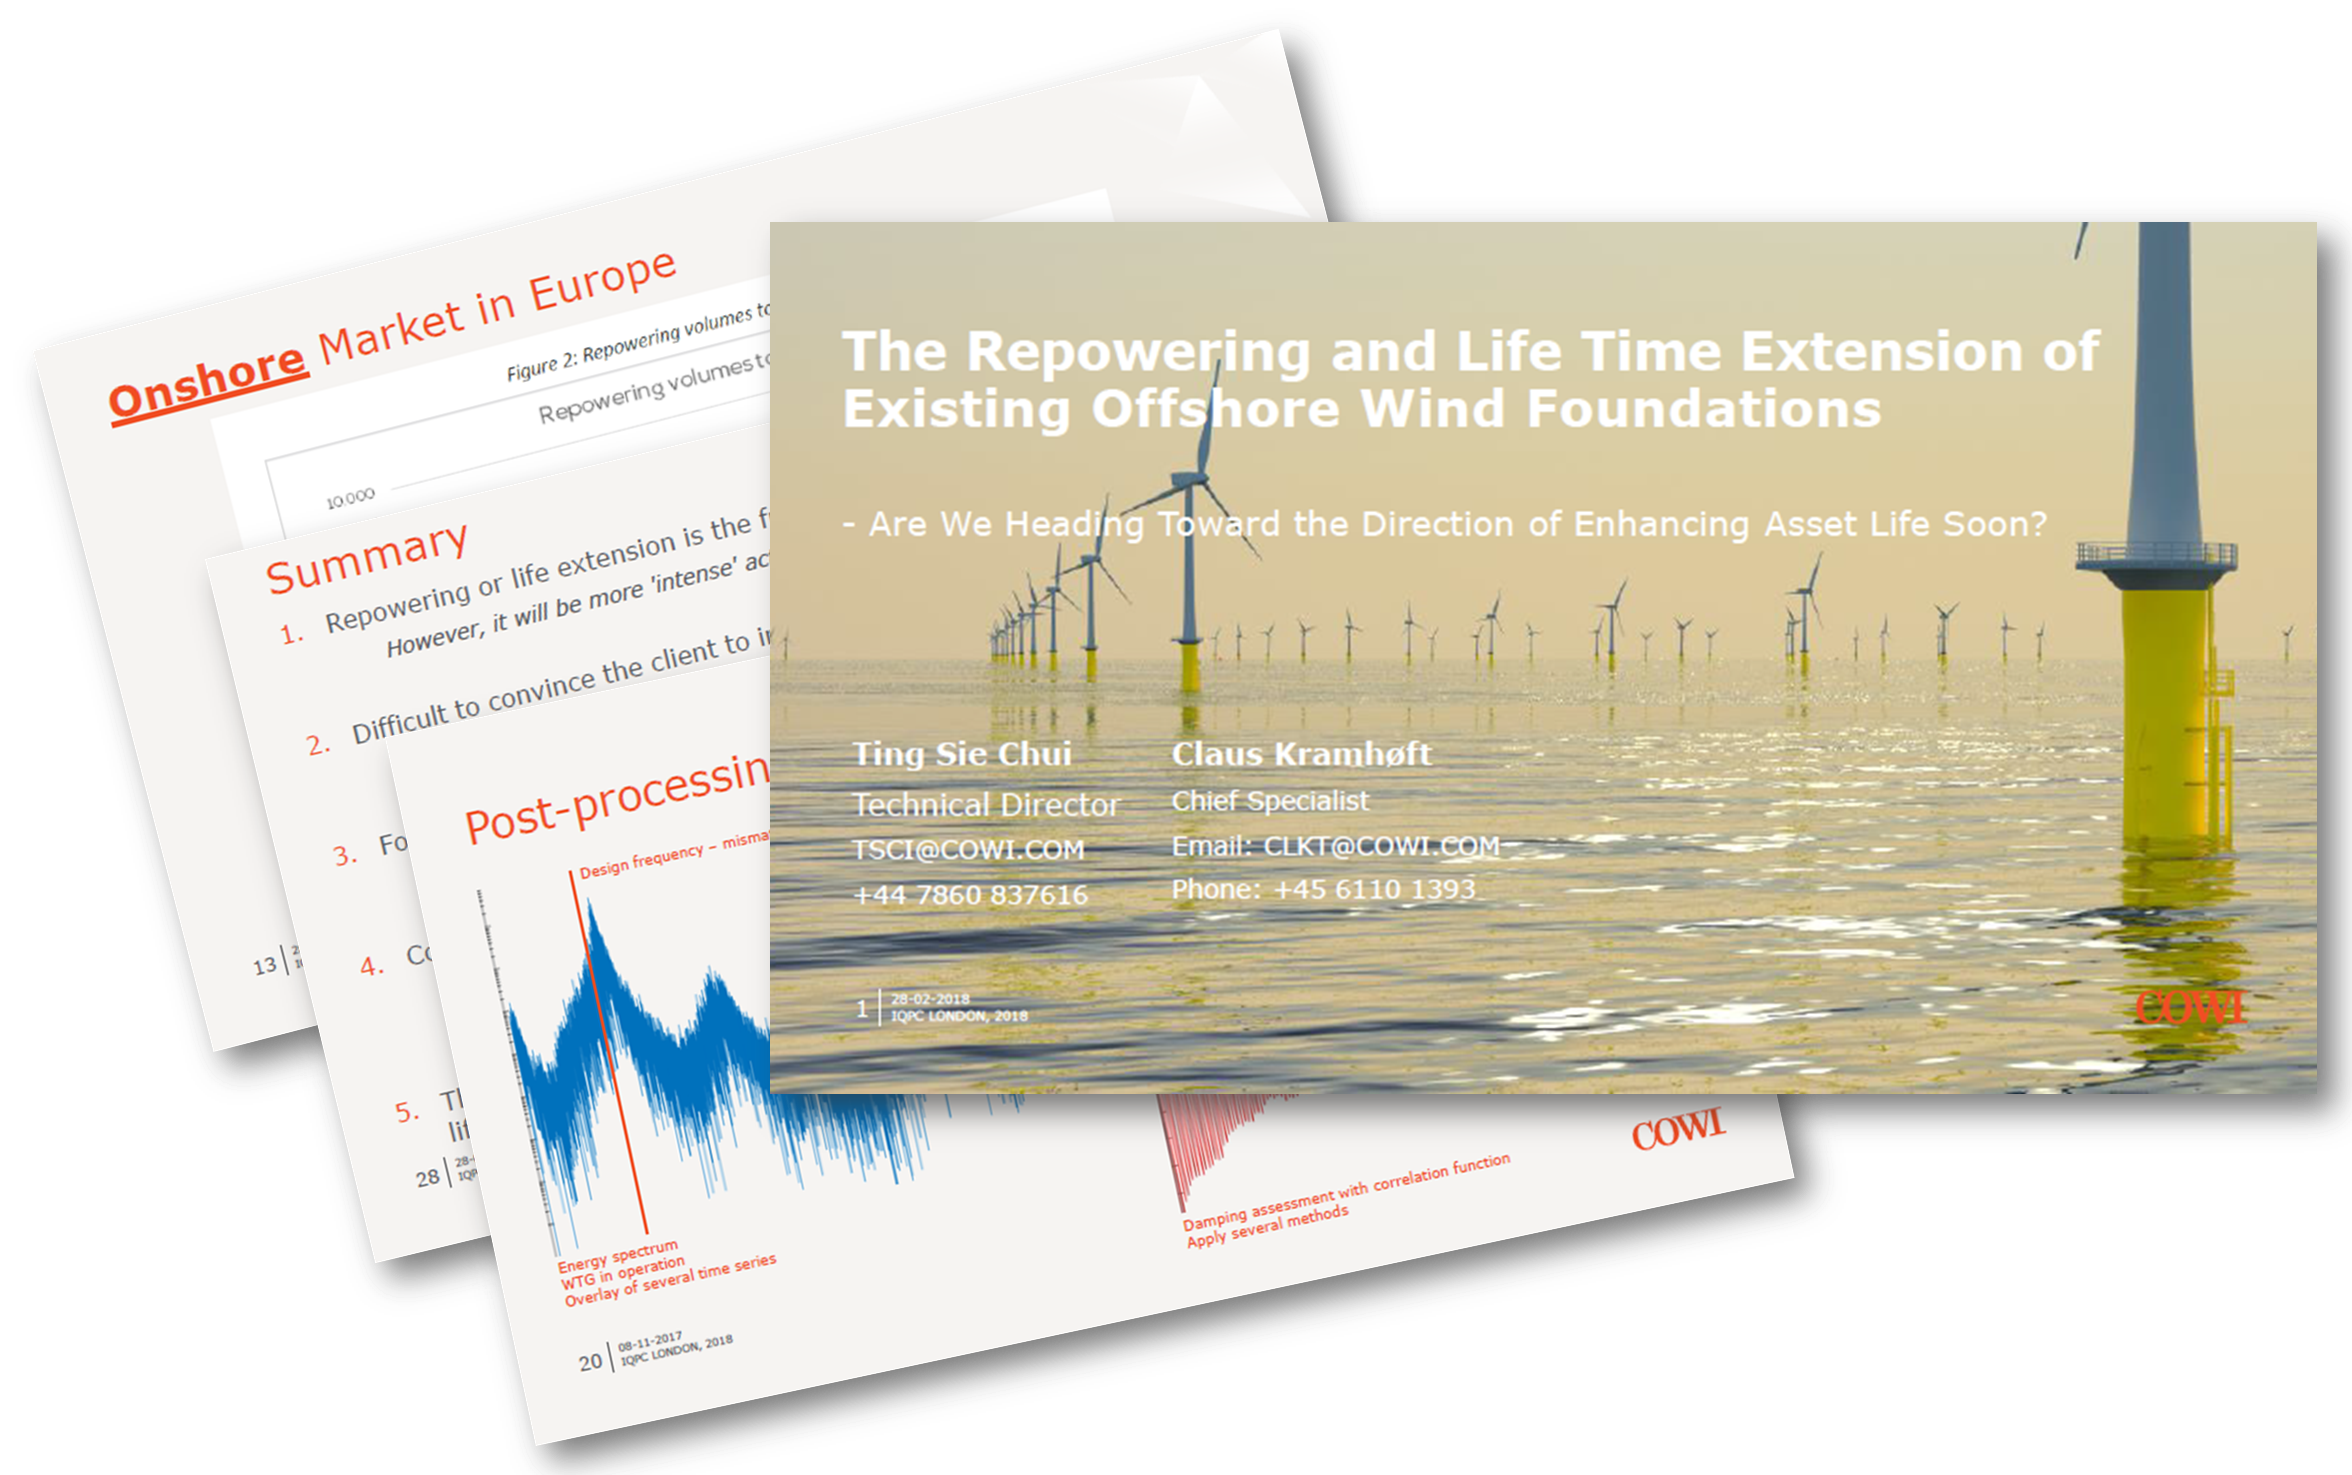 COWI Presentation - Repowering and life extension of existing UK offshore wind foundations